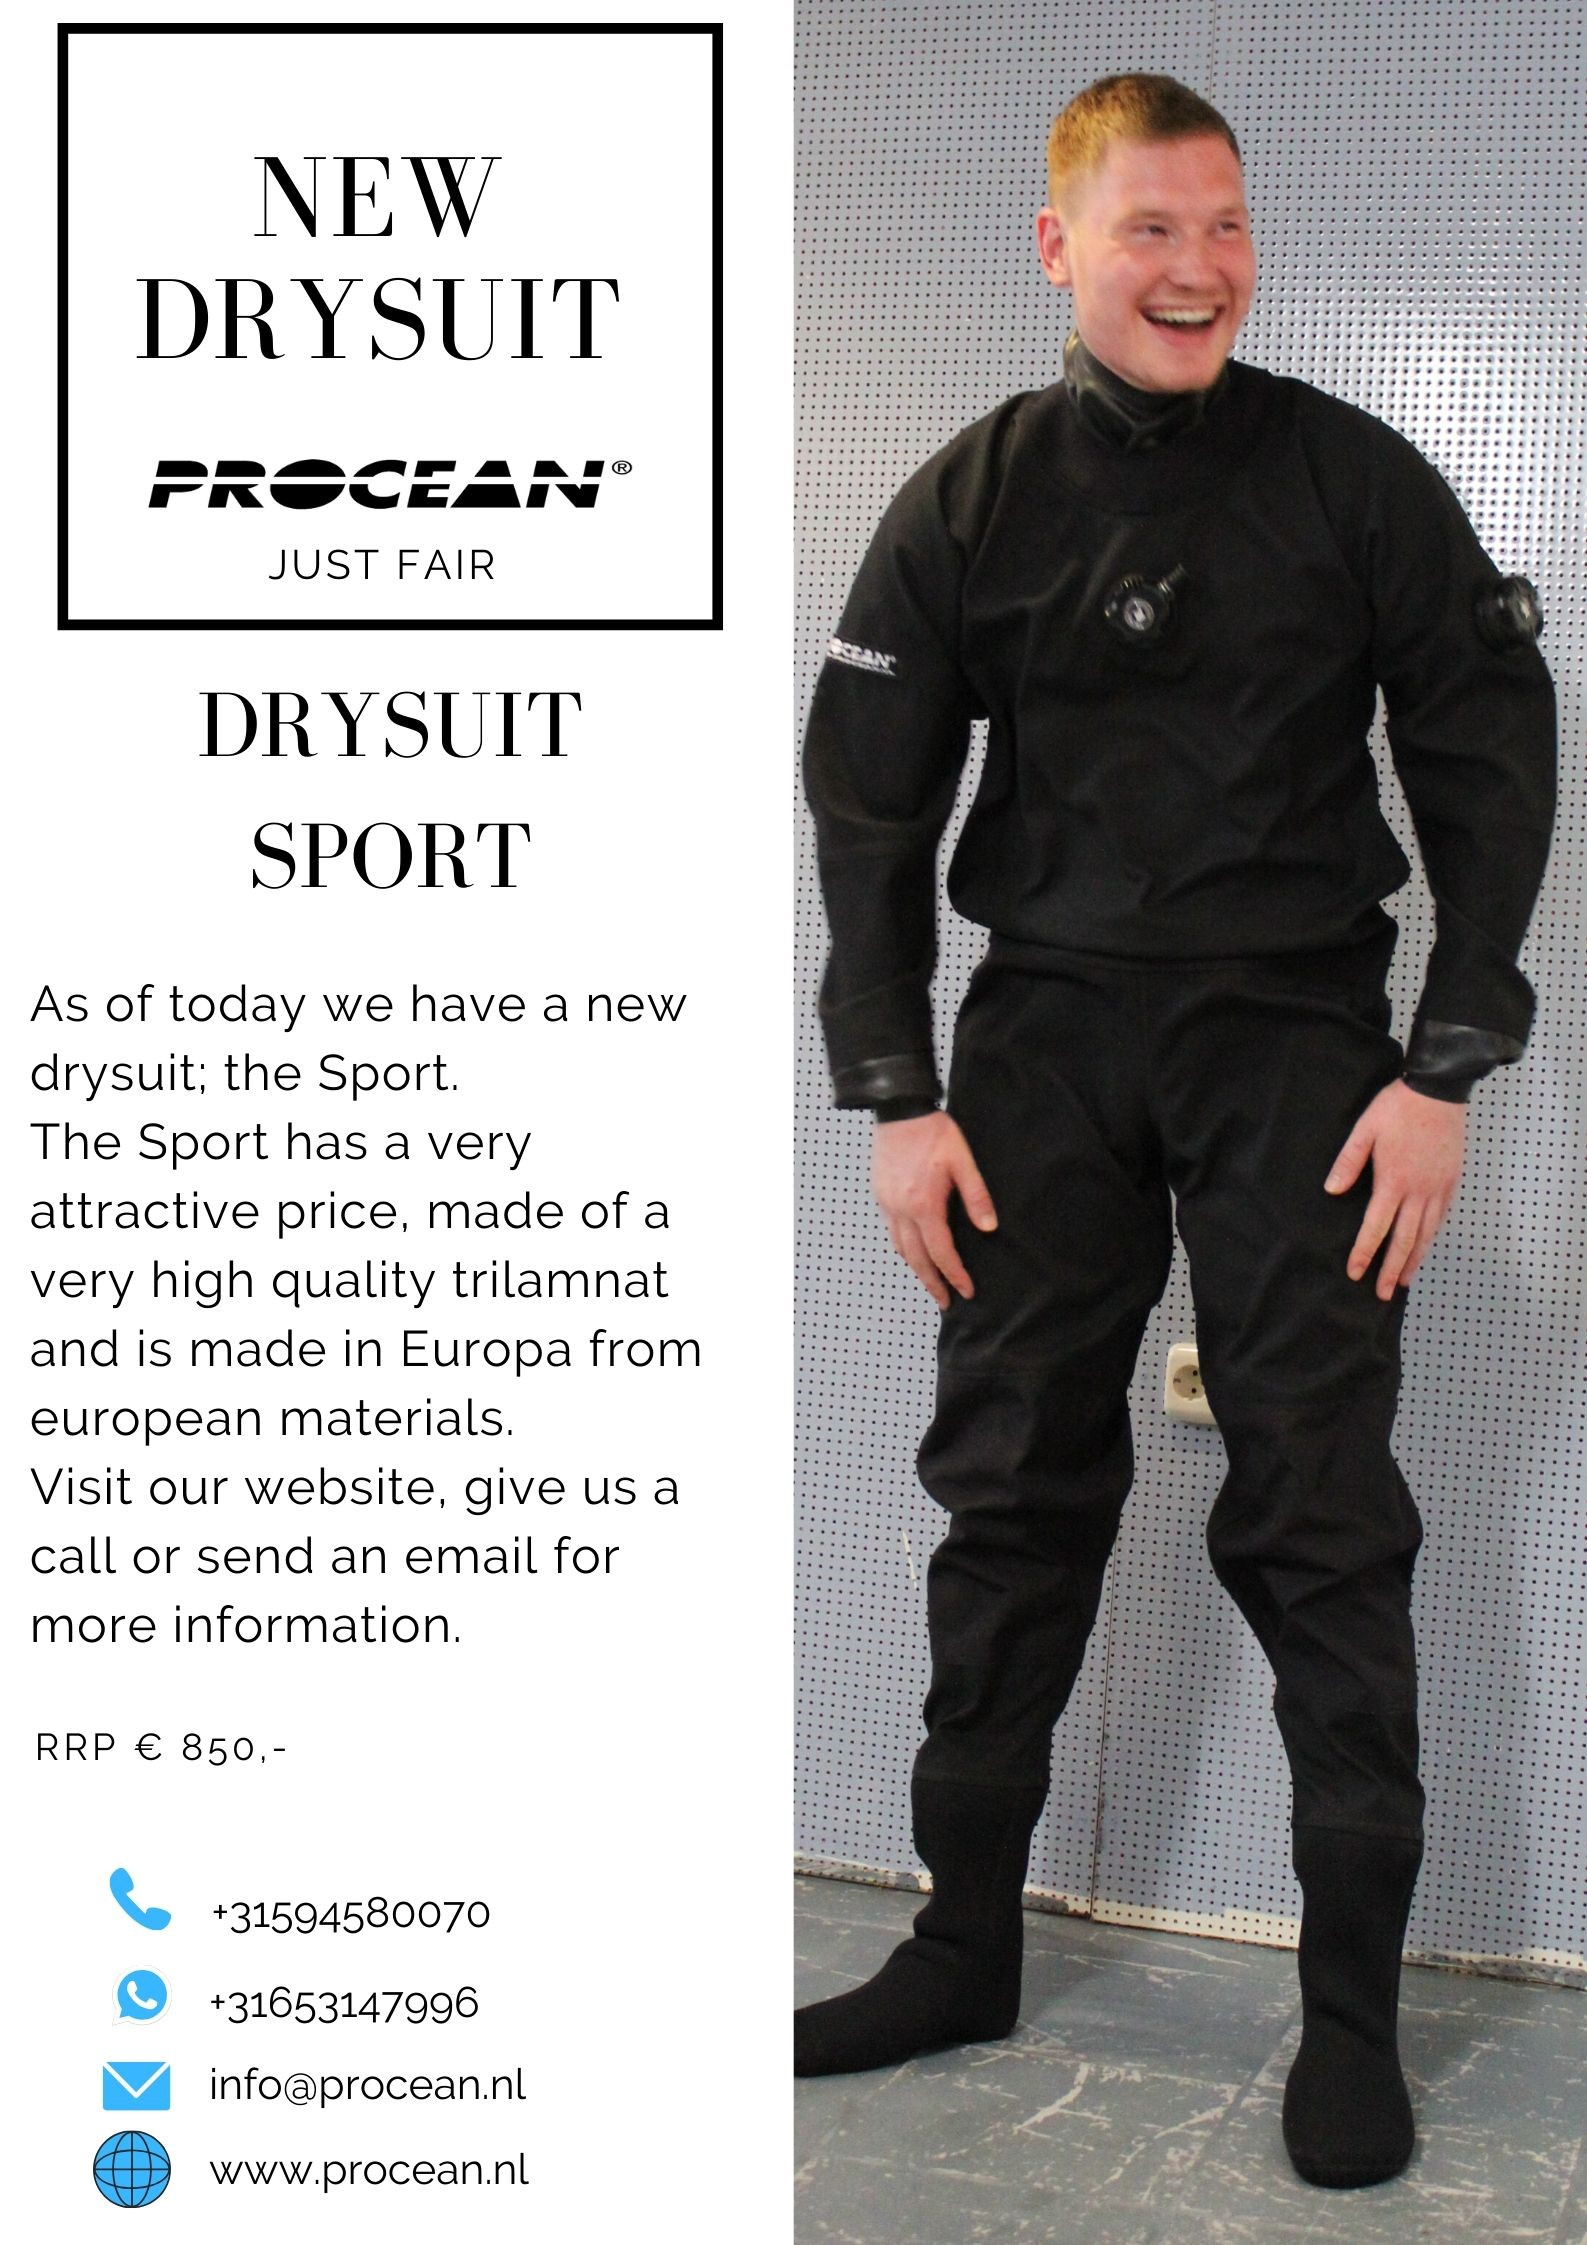 New drysuit